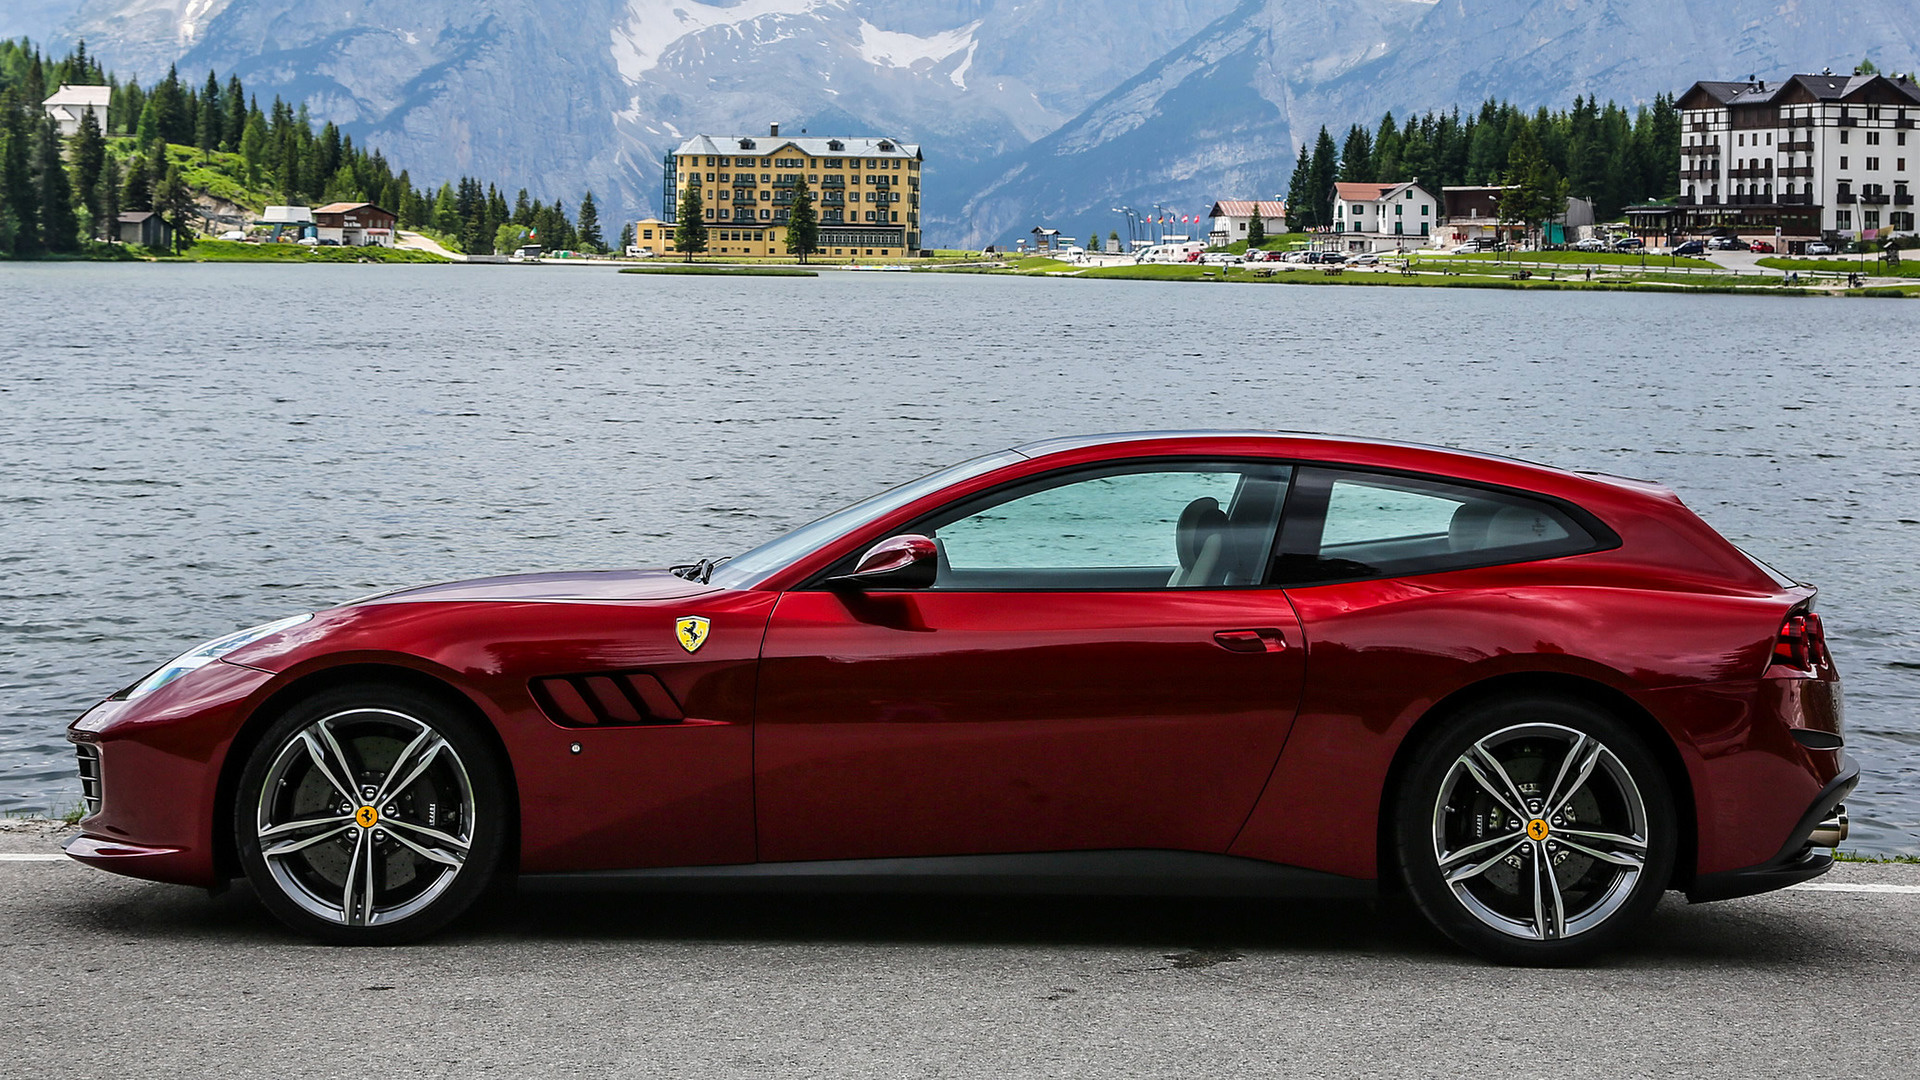 ferrari gtc4lusso (2016) wallpapers and hd images - car pixel